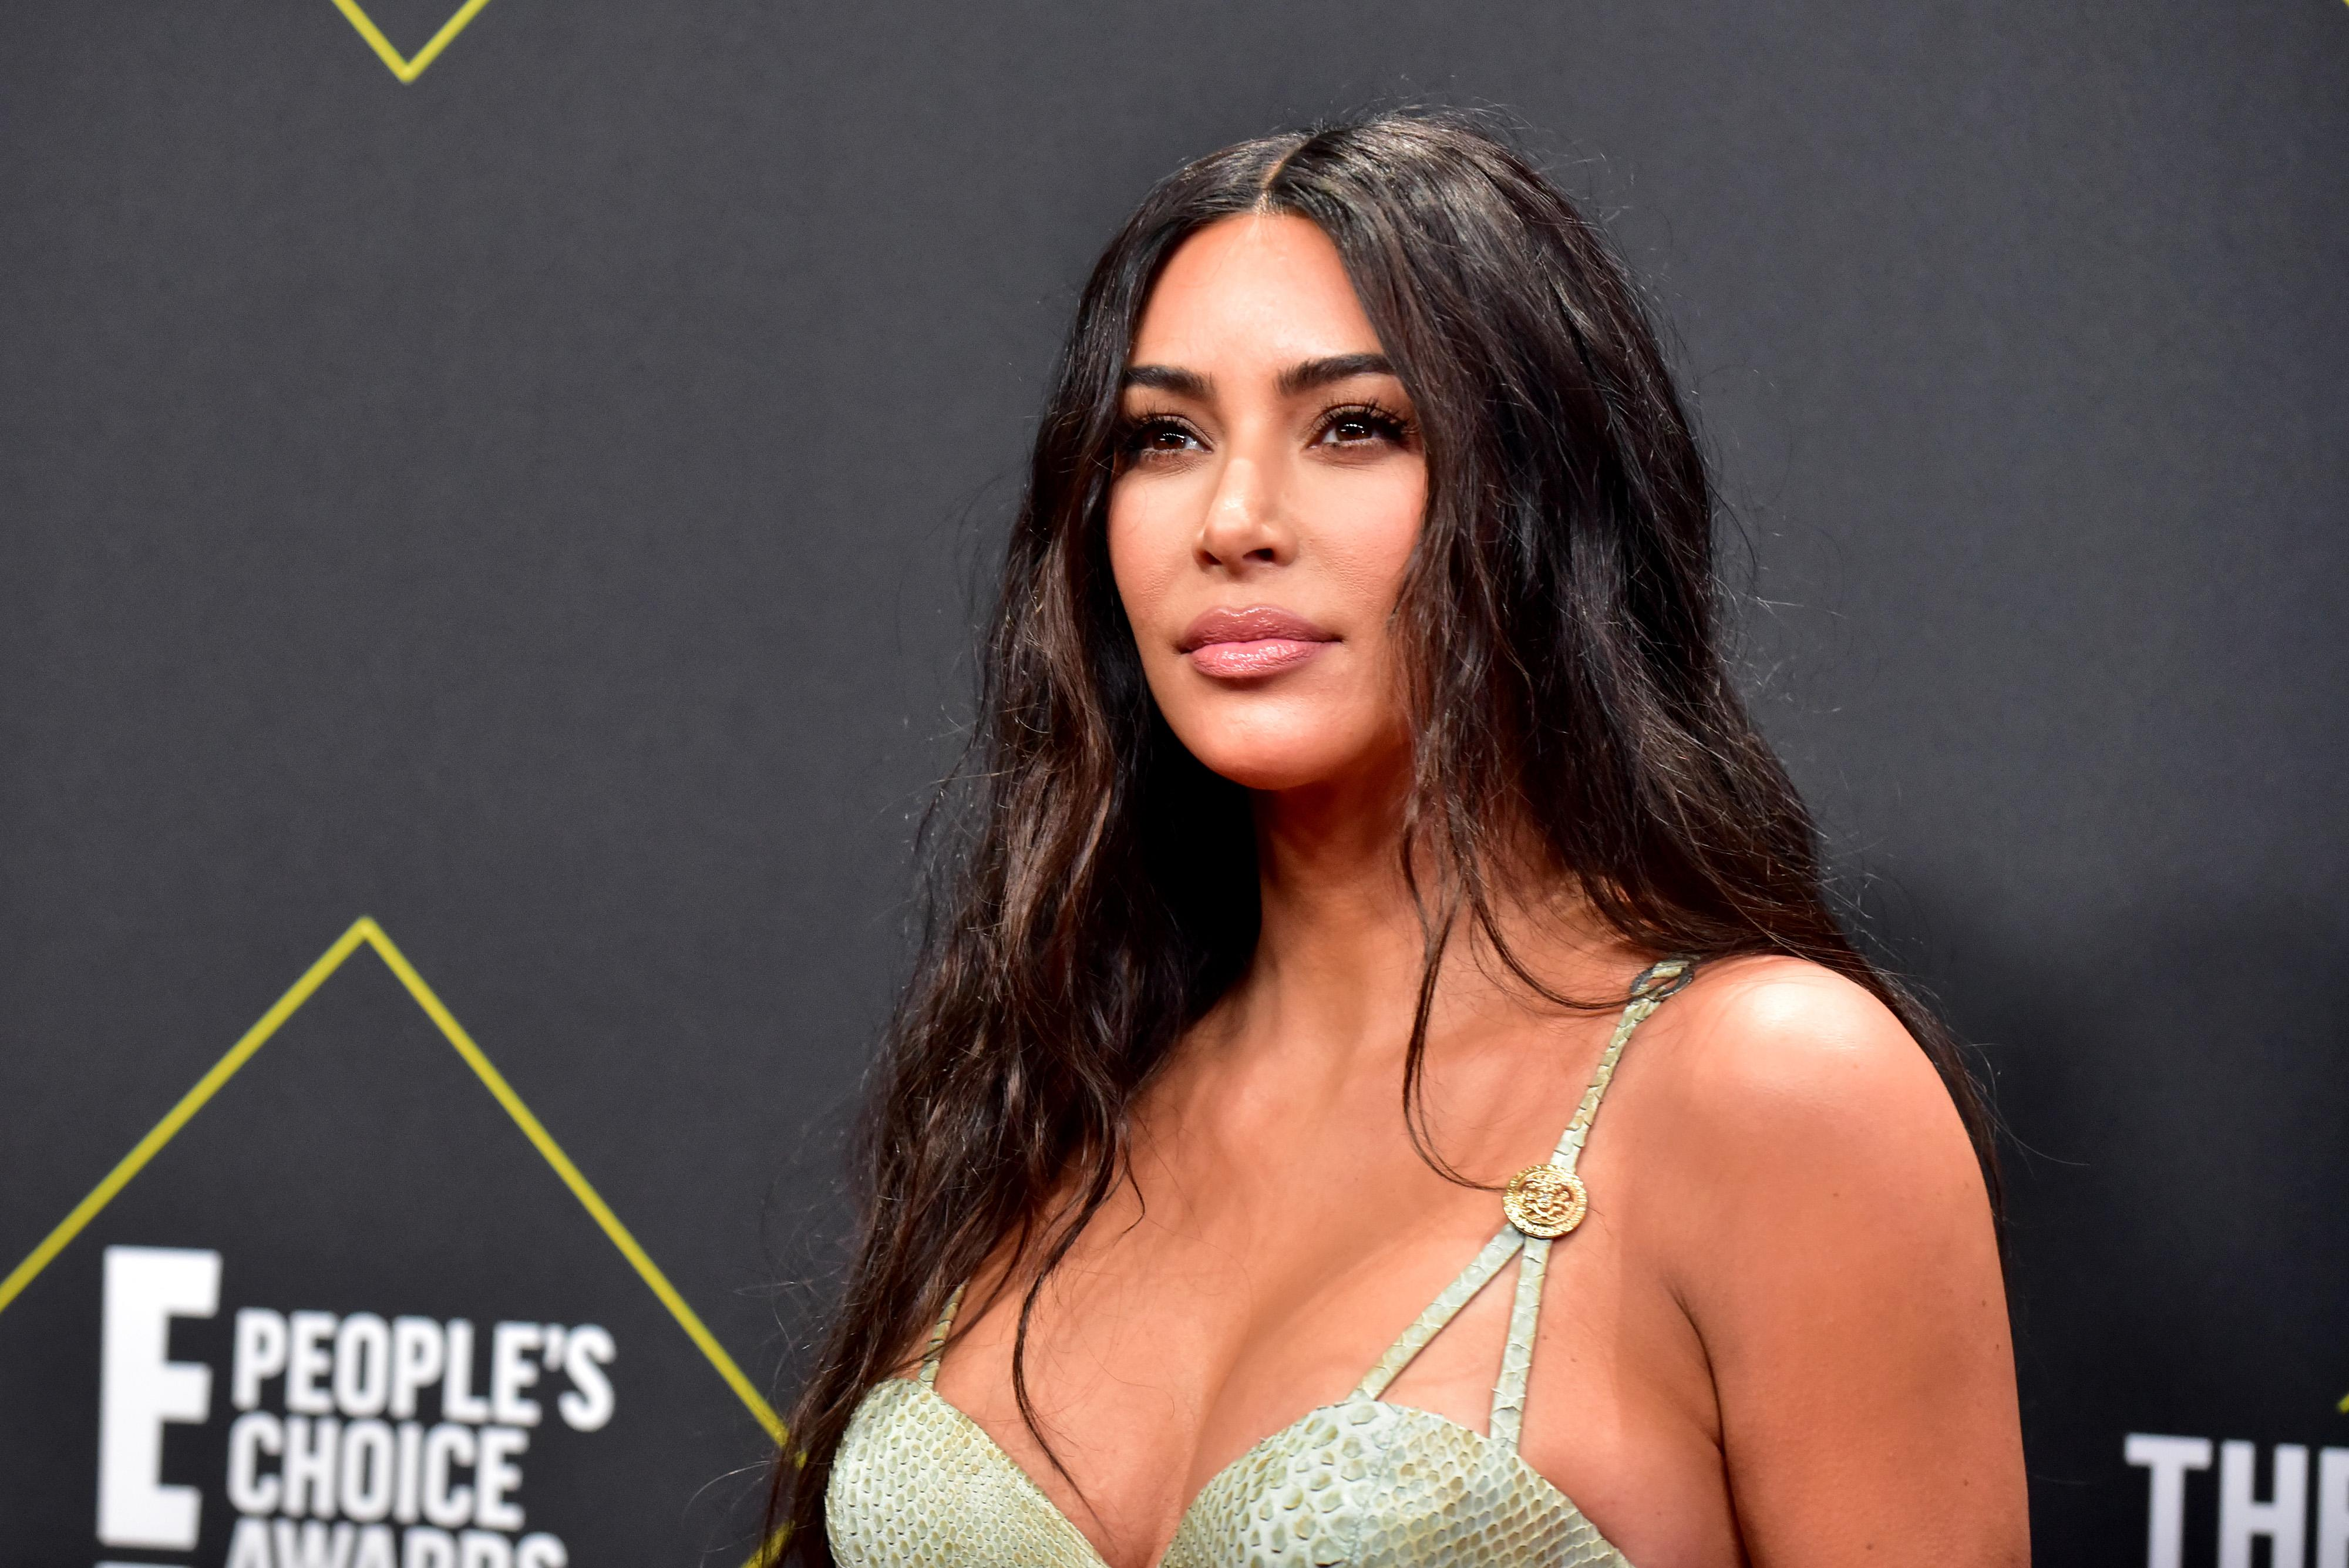 Kim Kardashian says 'raising two black men' helped change her perspective on Rodney Reed case